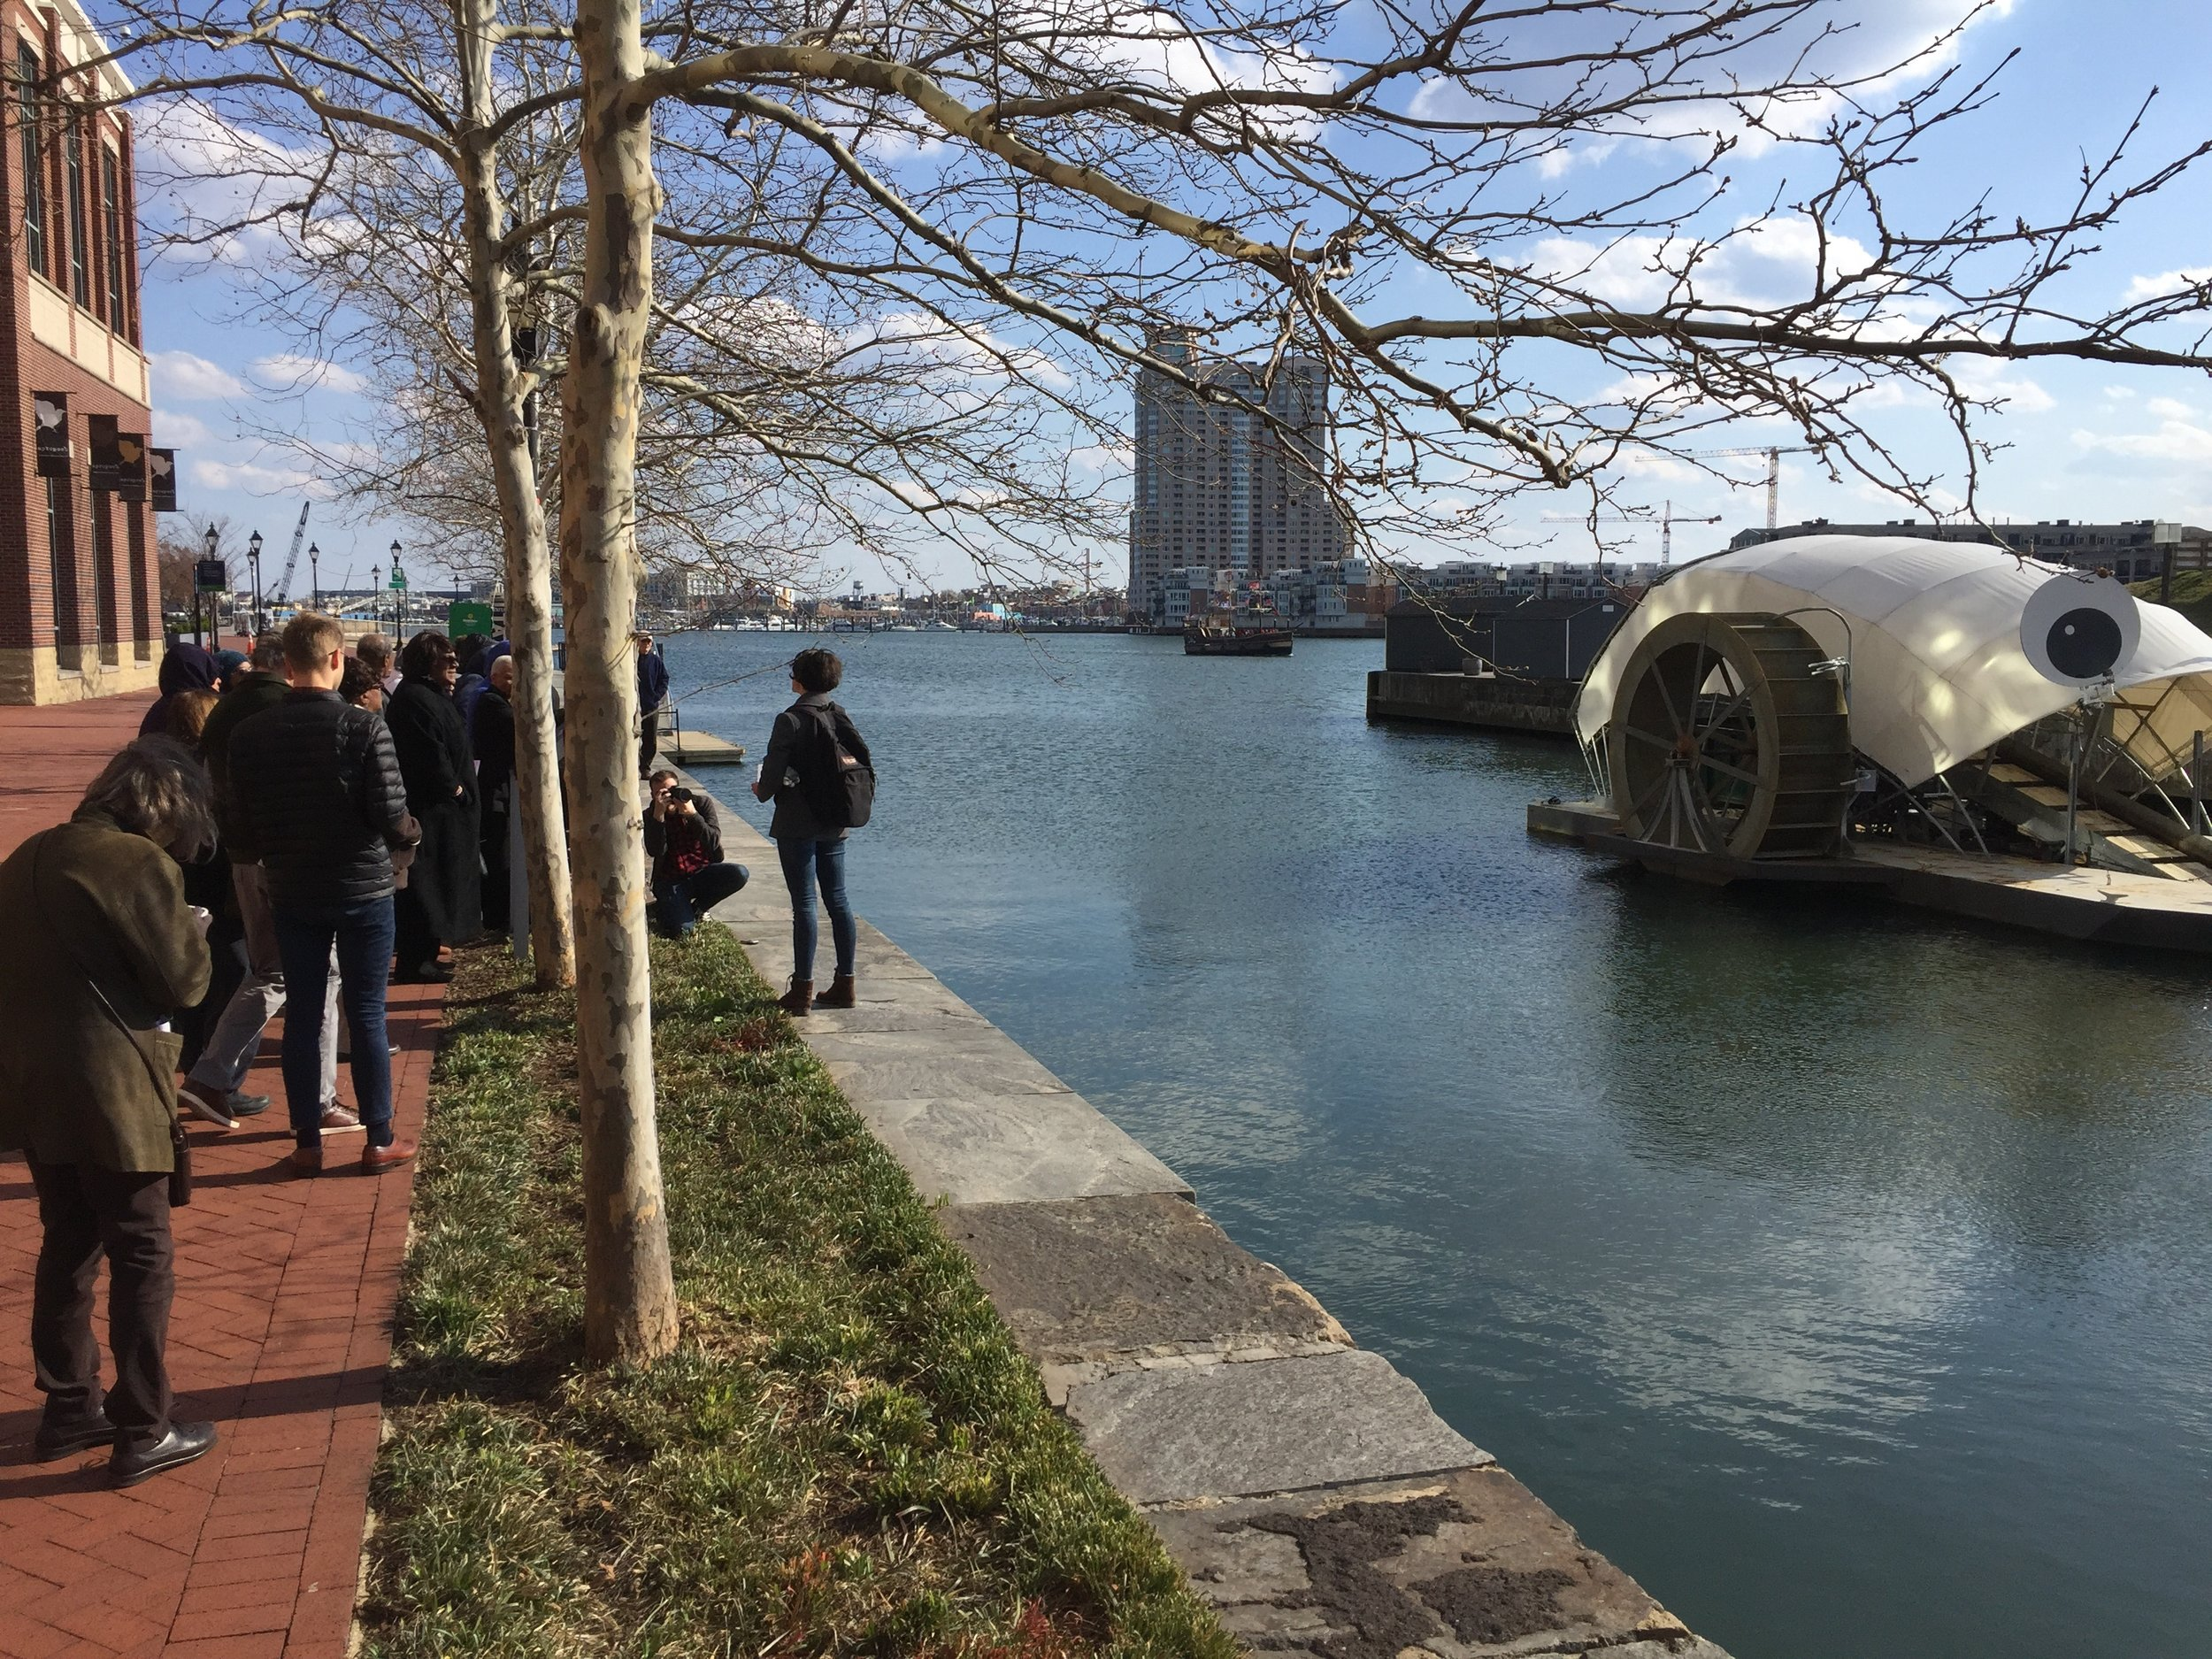 The Bus Tour ends at what is quite possibly Baltimore's most world-famous landmark - Mr. Trash Wheel. With his googly-eyes and his green mission, Mr. Trash Wheel has been featured in articles and lectures from Singapore to Sweden.